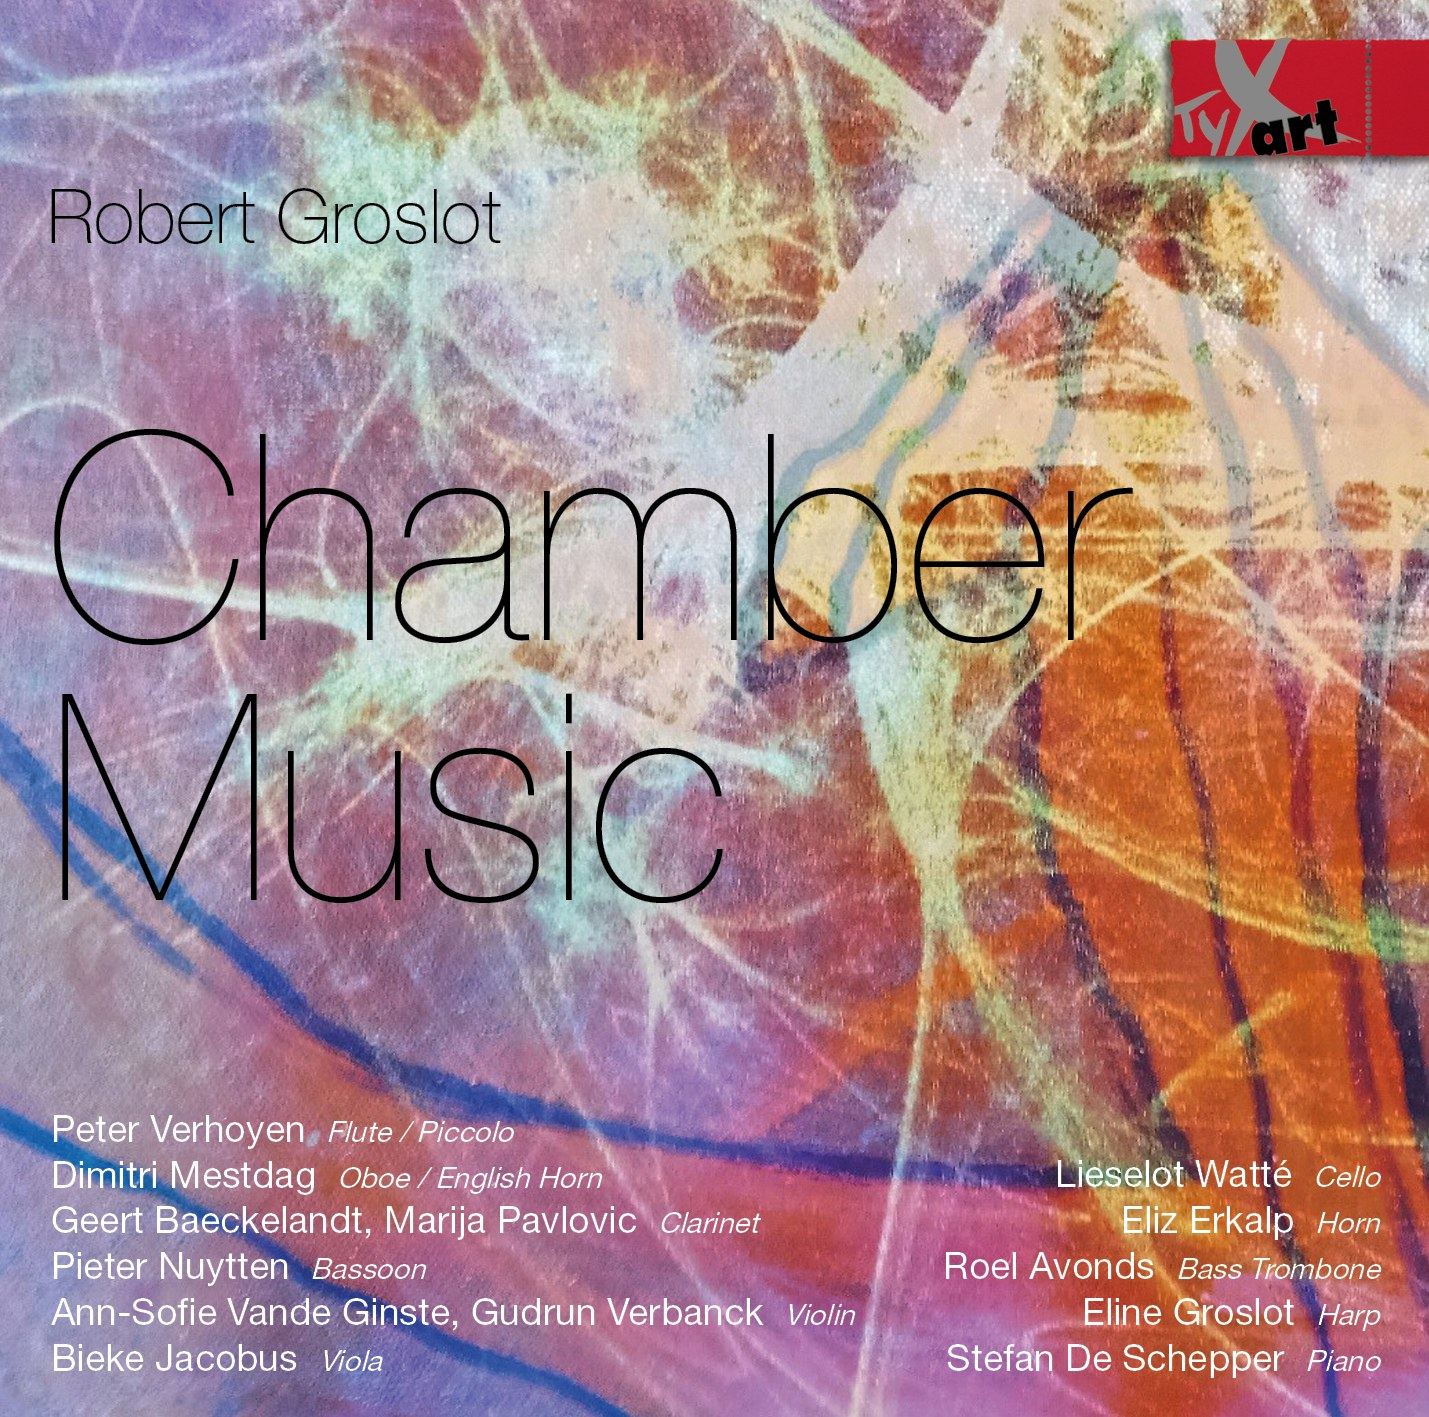 Robert Groslot: Chamber Music